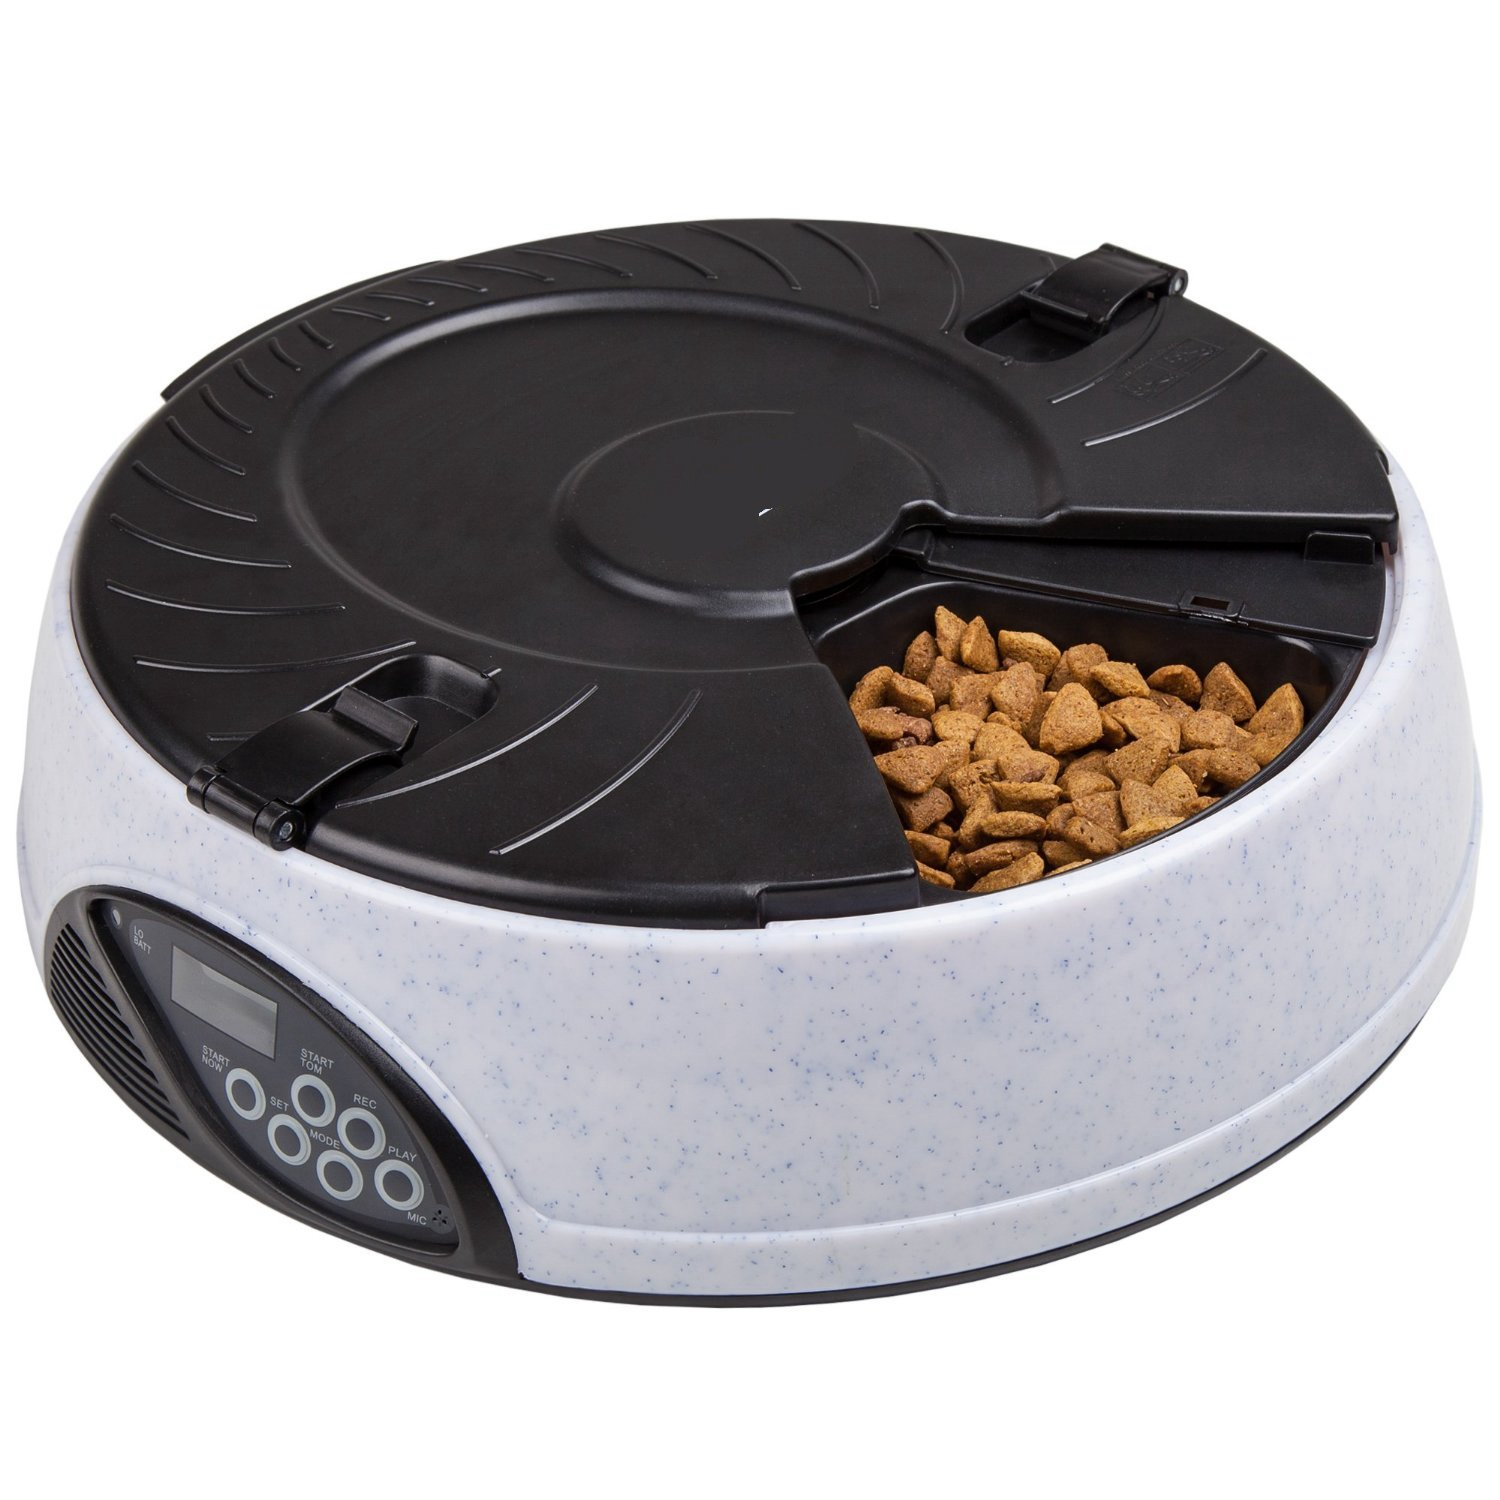 link intelligent pet feeder timer com selective automatic smart care bowl ourpets amazon dp supplies dog